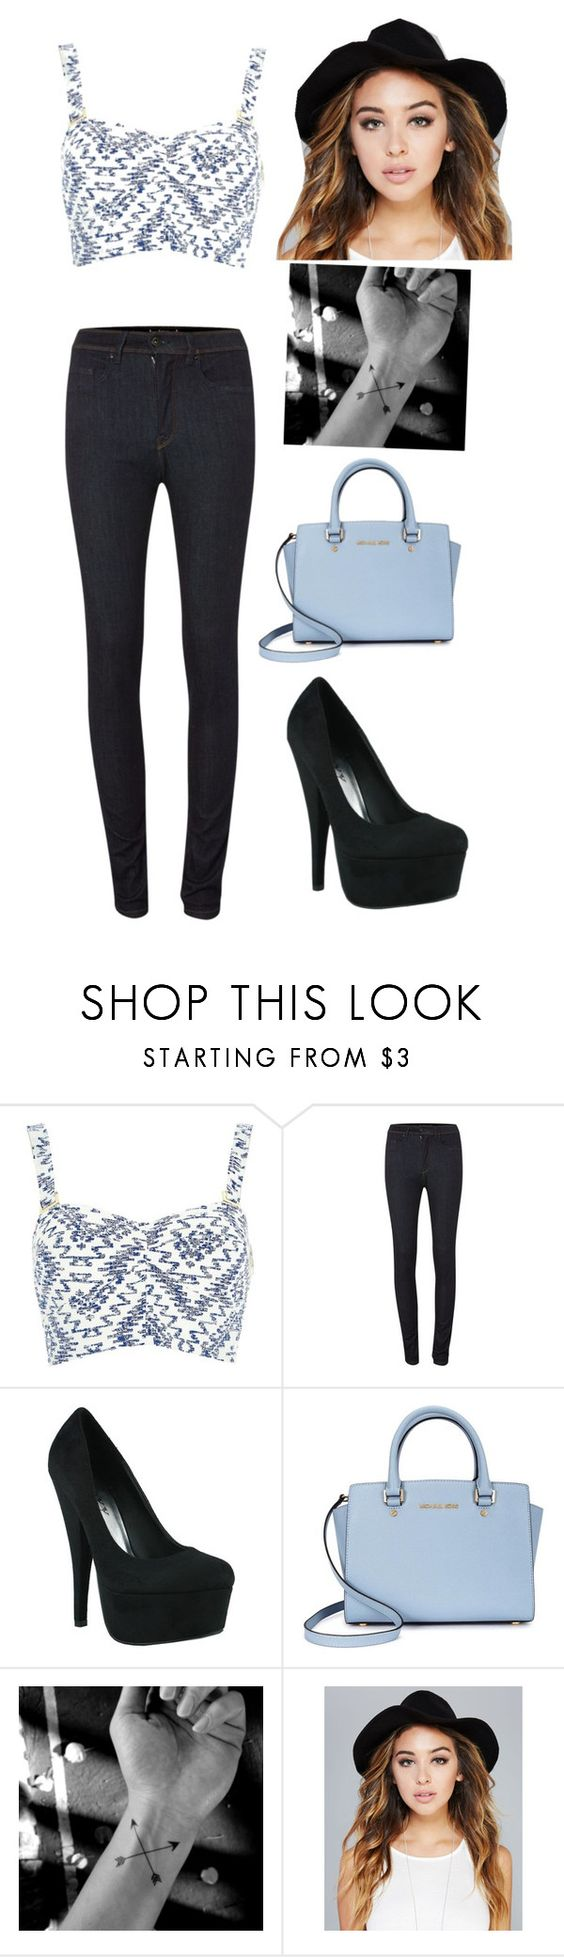 """""""Untitled #15"""" by mirandadancer54 ❤ liked on Polyvore featuring River Island, Salsa, Michael Kors and Wet Seal"""